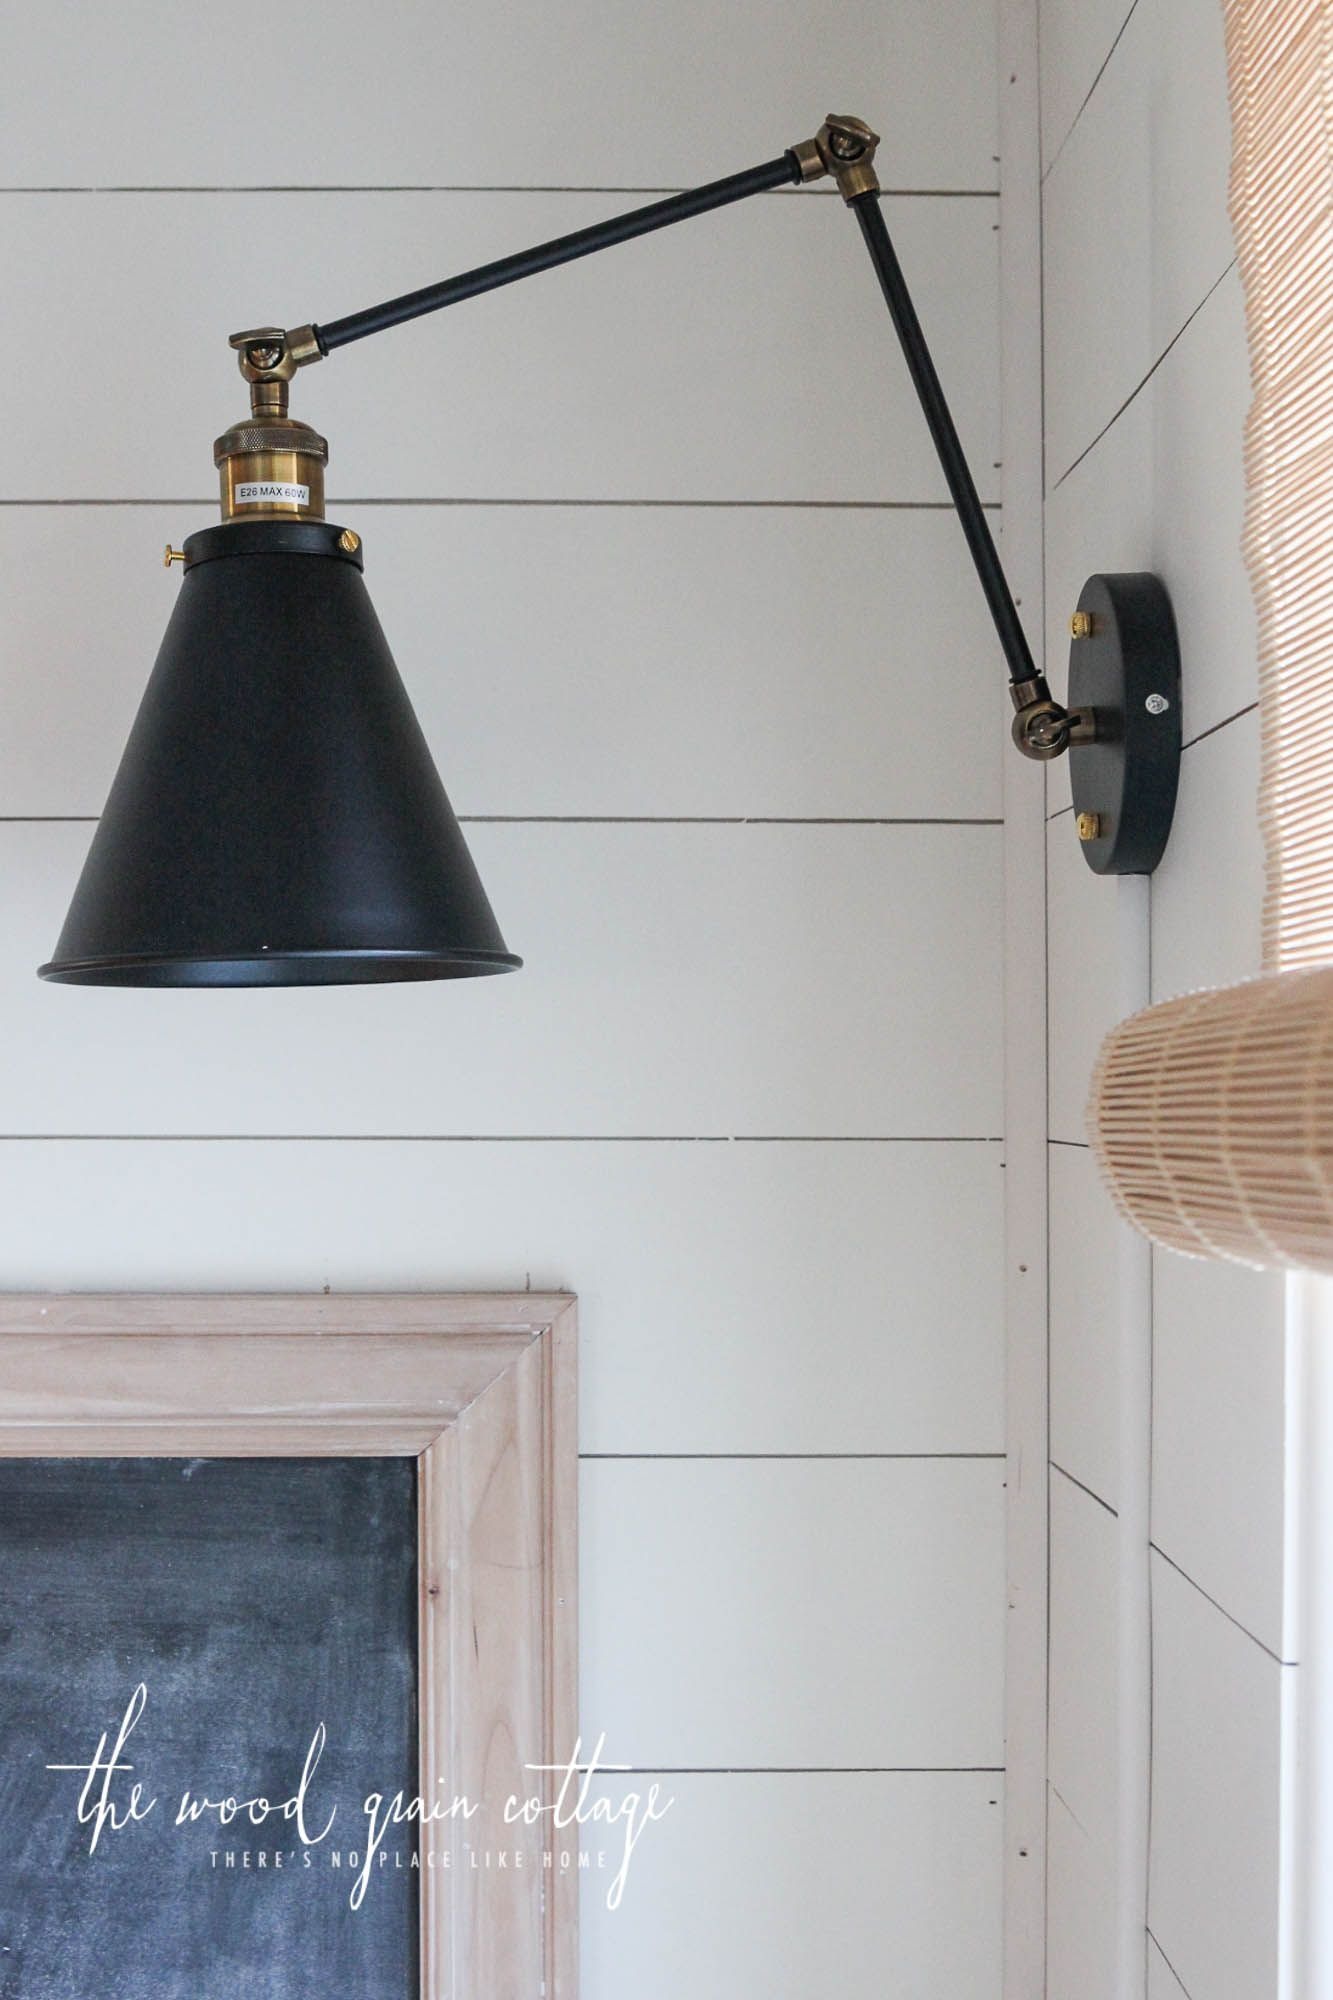 I Ve Been Dreaming Of Wall Lights On Either Side Our Breakfast Nook Window For A Few Months Now Love The Way They Look And Add That Extra Detail